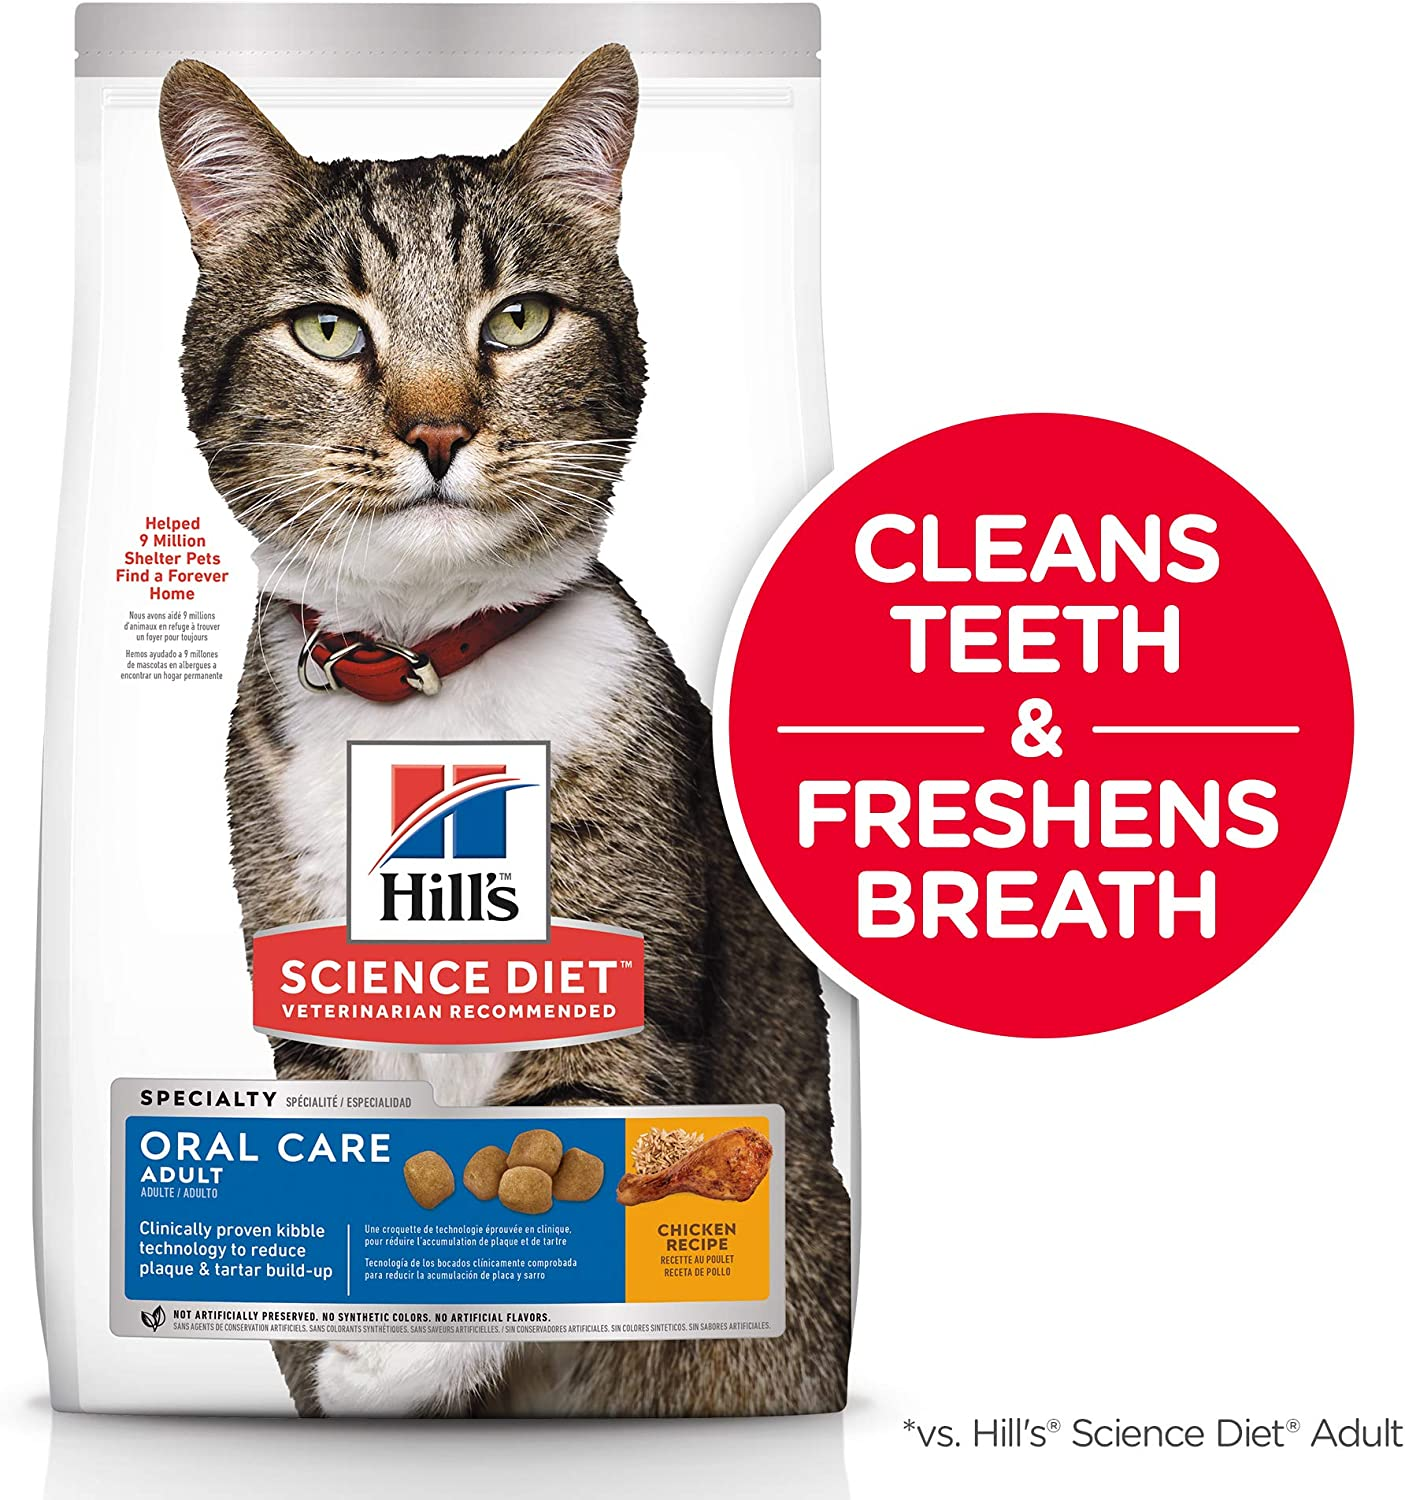 6. Hill's Science Diet Adult Oral Care Dry Cat Food